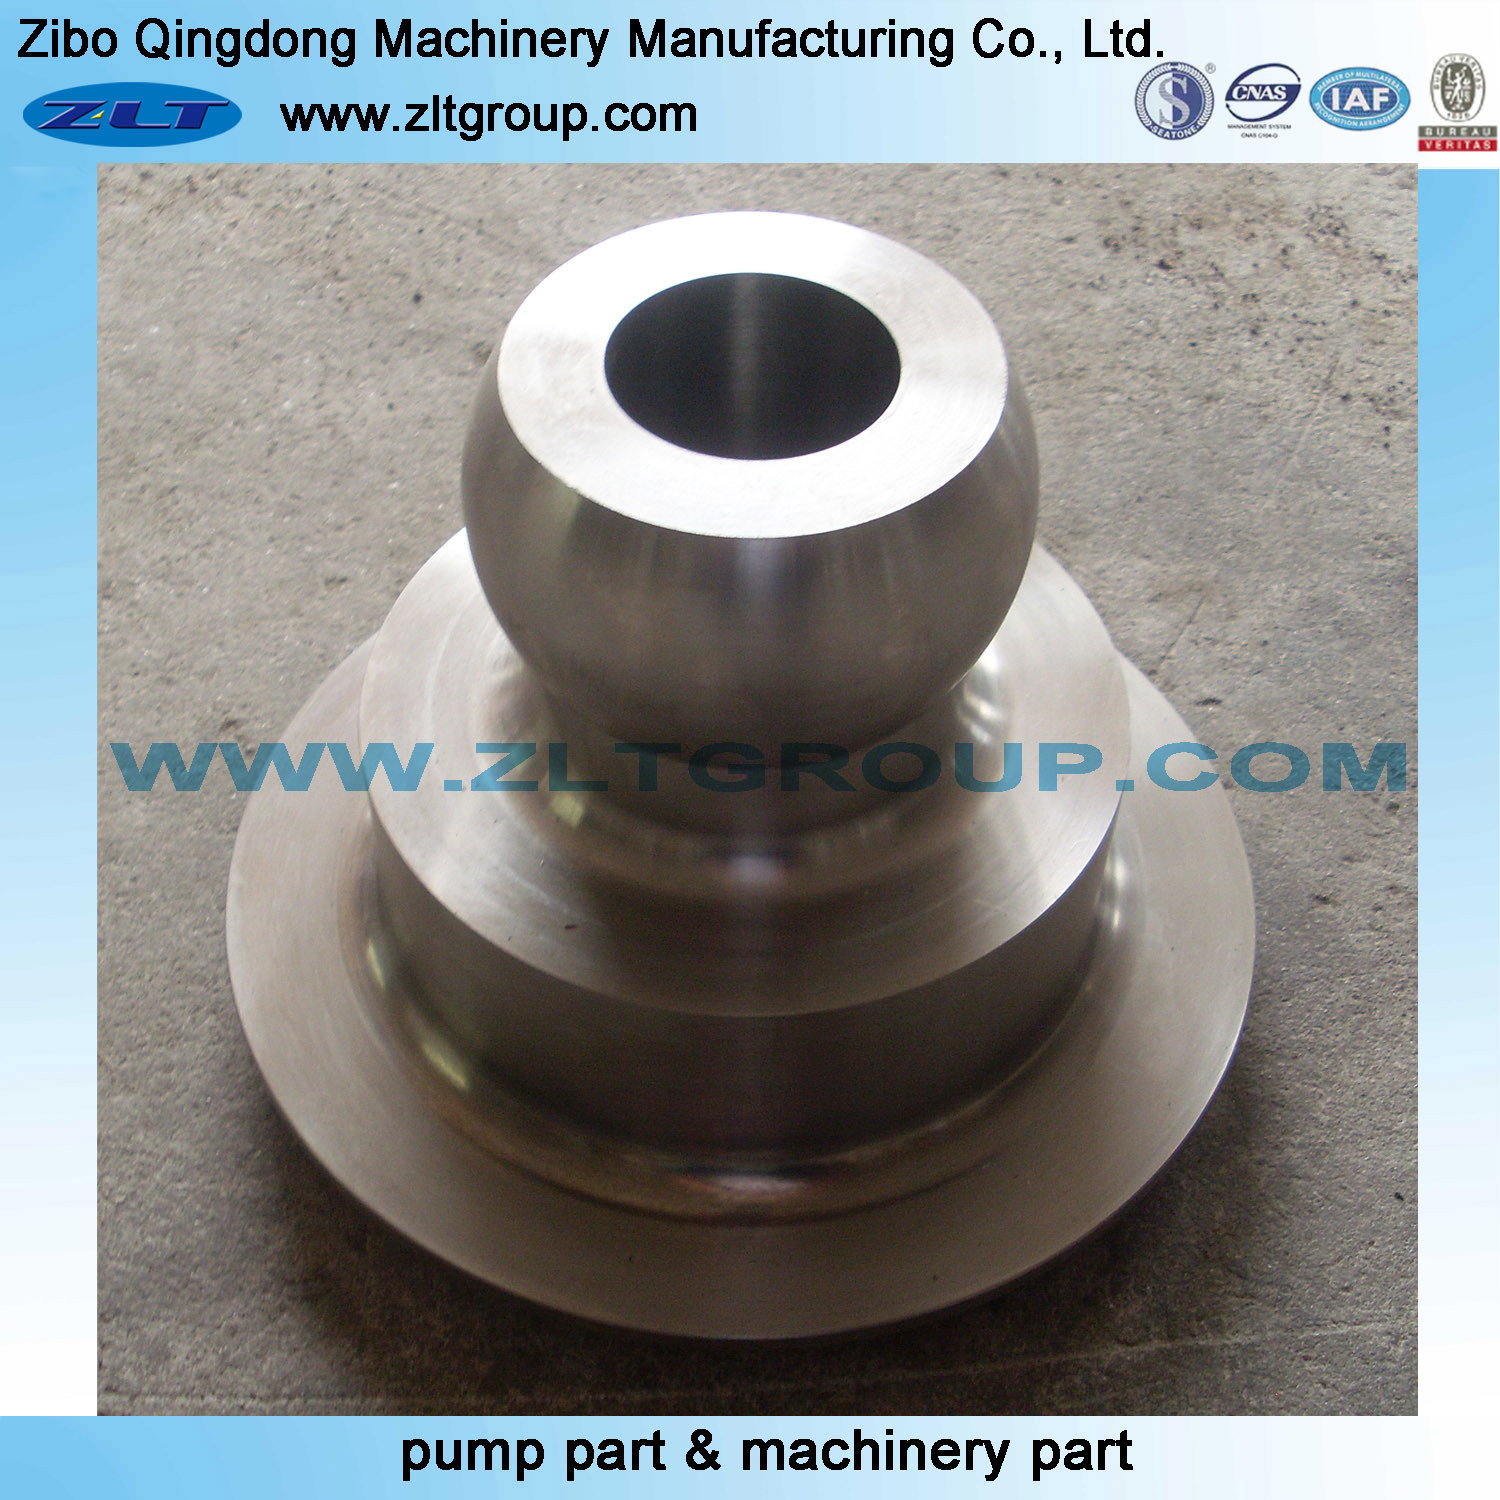 Customized Made CNC Investment Casting Parts with CNC Machine